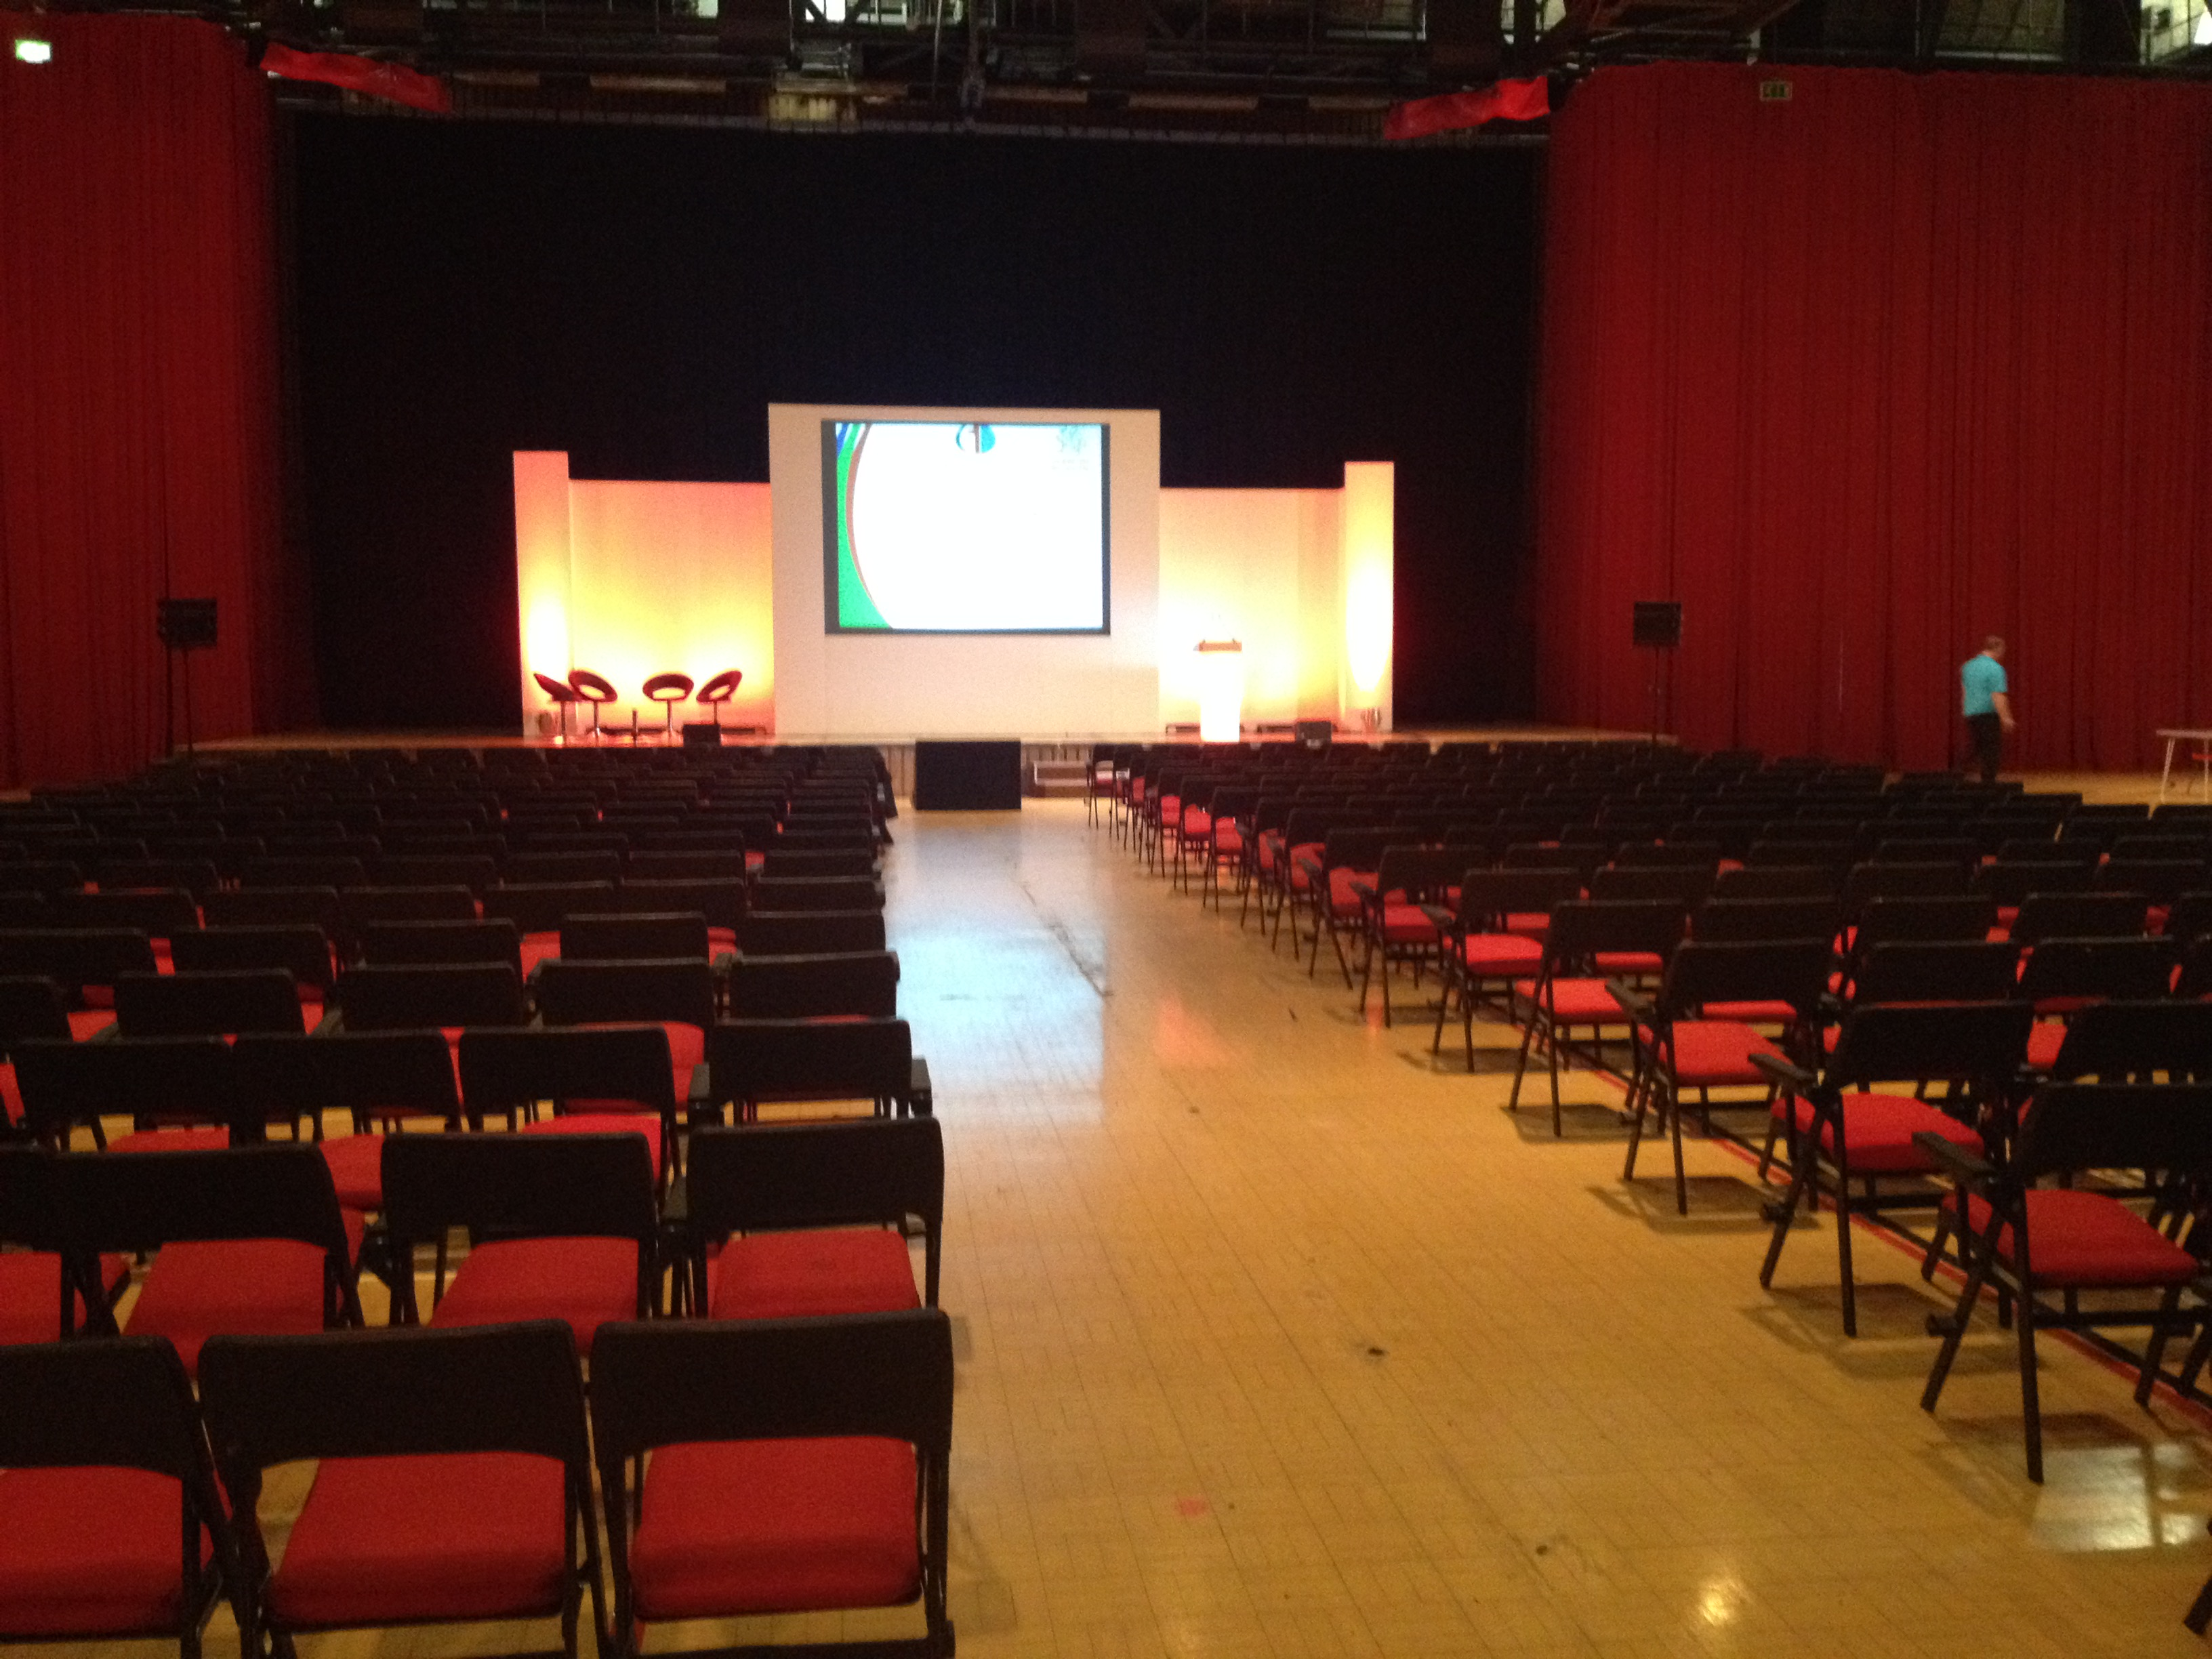 Newport centre sports hall set up theatre style for a conference